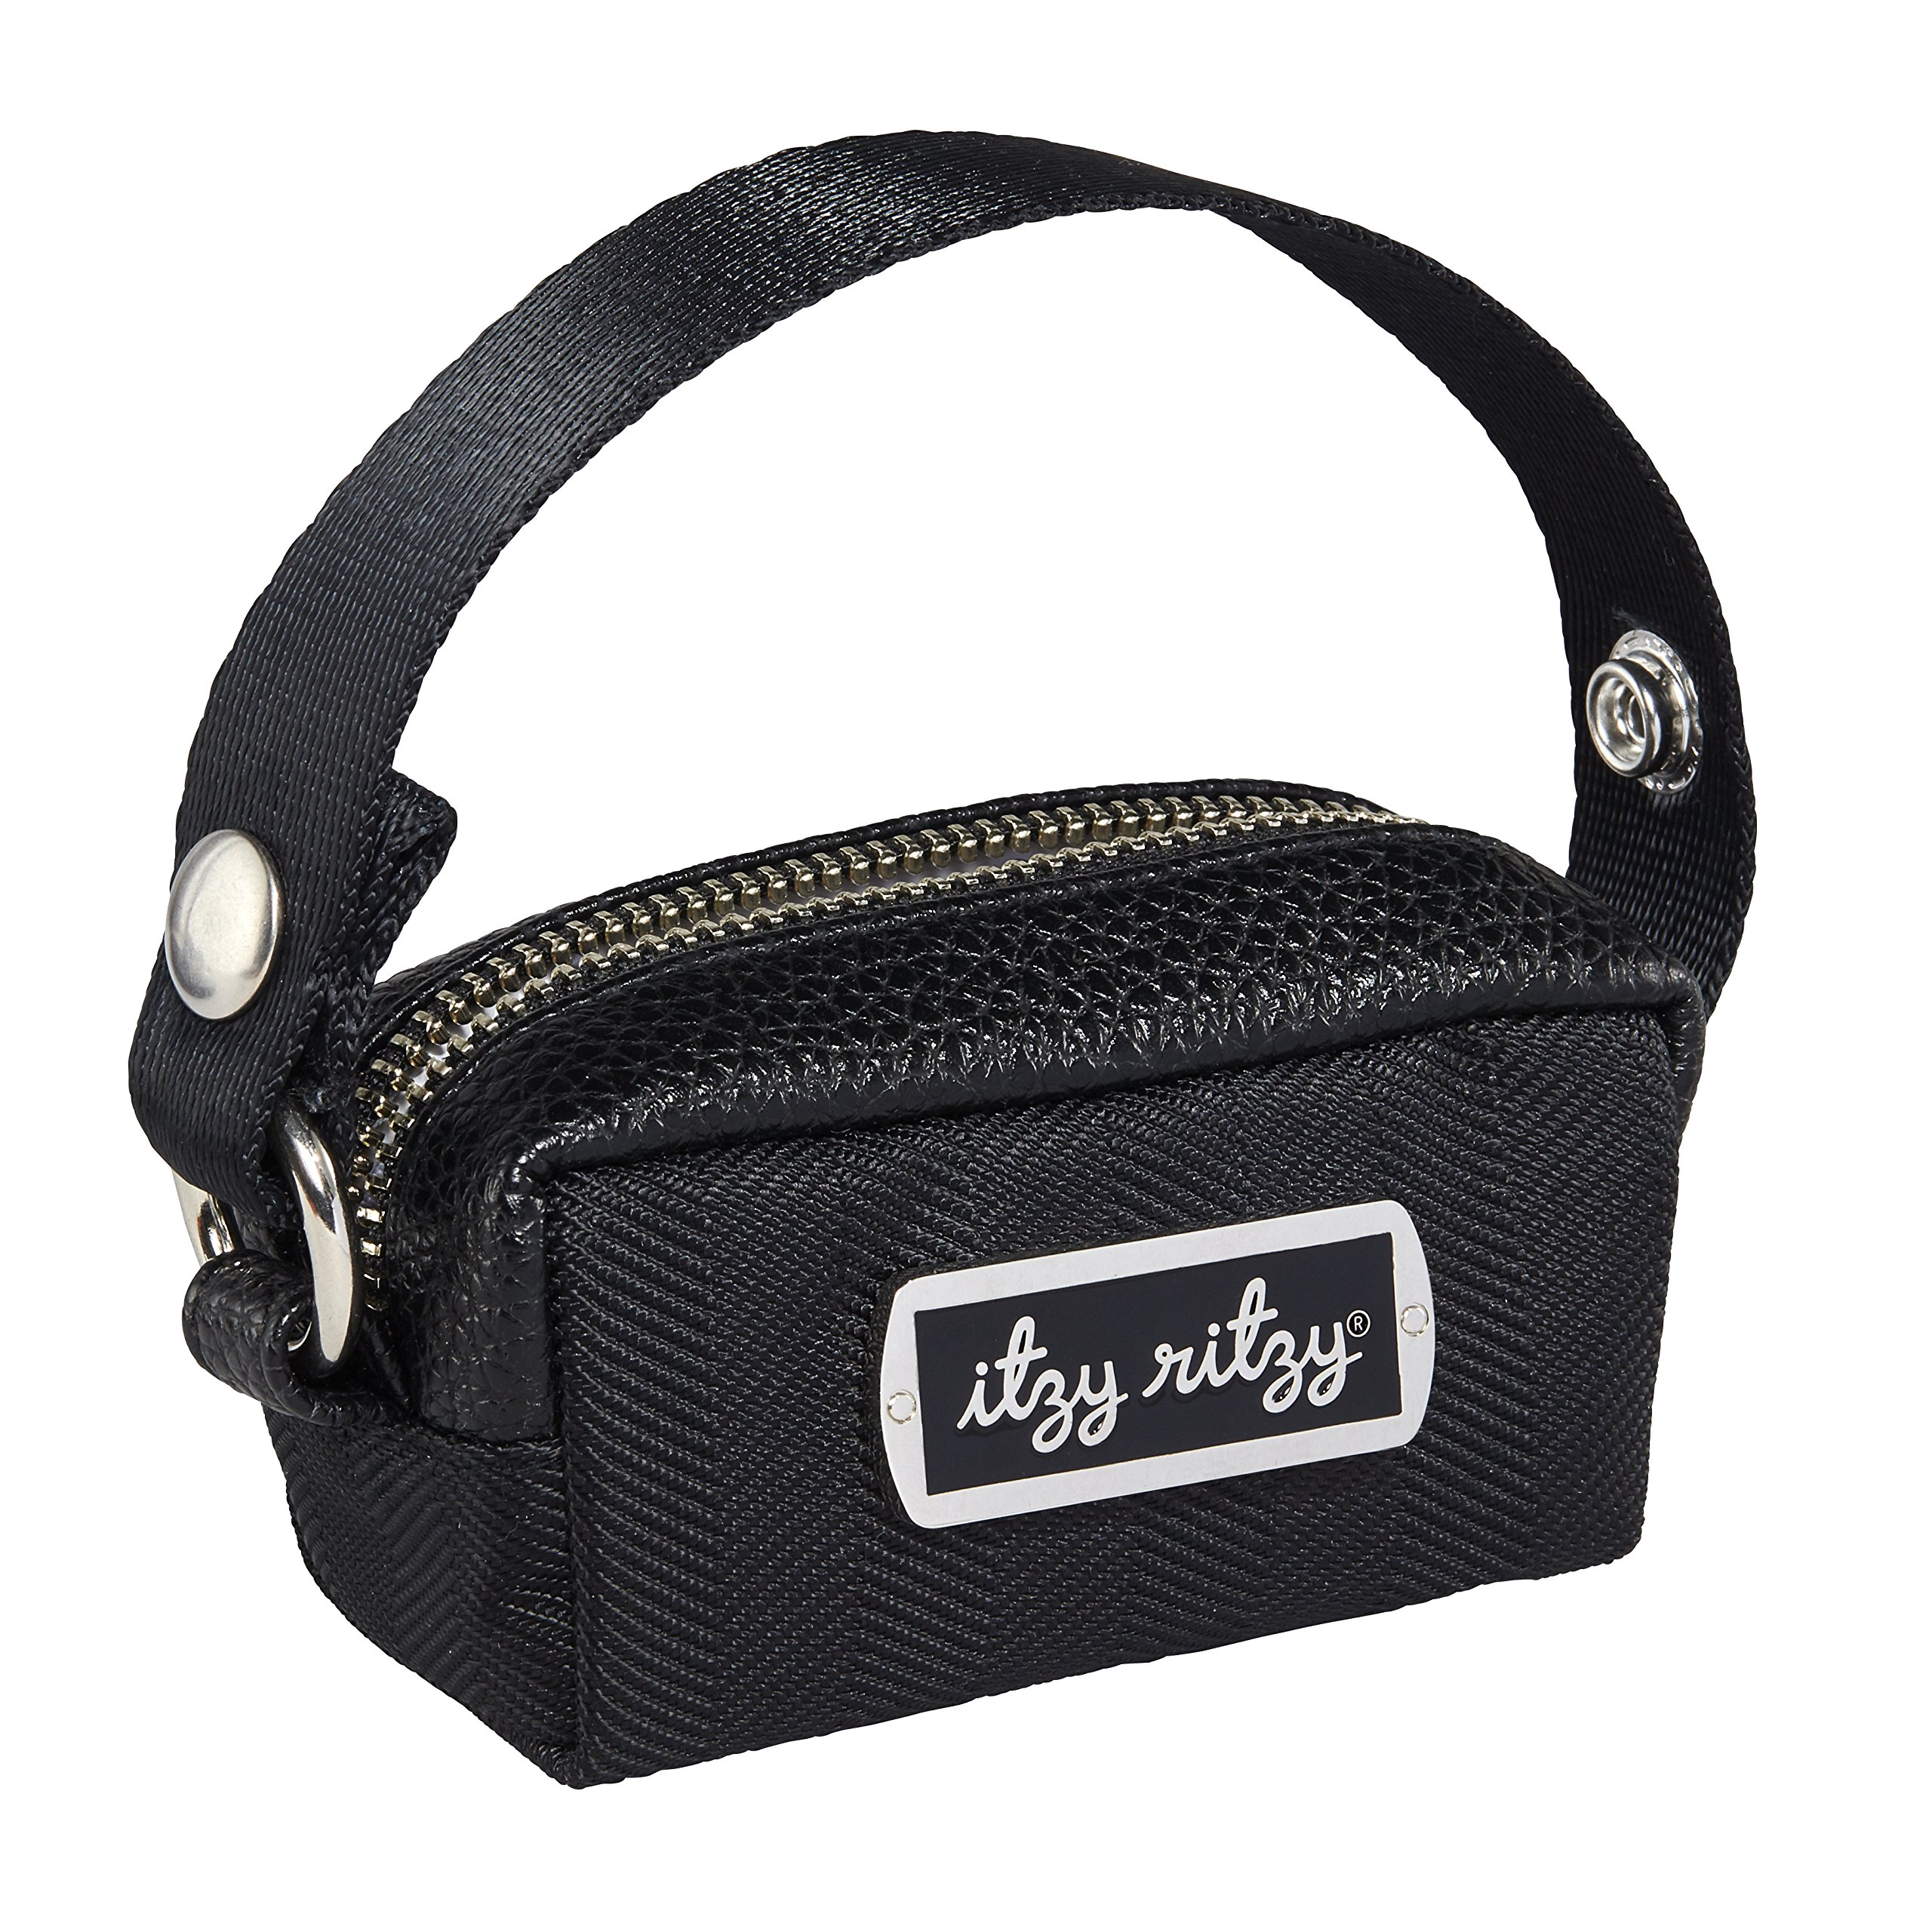 Itzy Ritzy Pacifier Case with Adjustable Handle - Pacifier Pod Holds 2 Pacifiers and Can Be Worn as a Wristlet or Attached to a Diaper Bag or Purse; Measures 4.5'' L x 2.25'' W, Black Herringbone by Itzy Ritzy